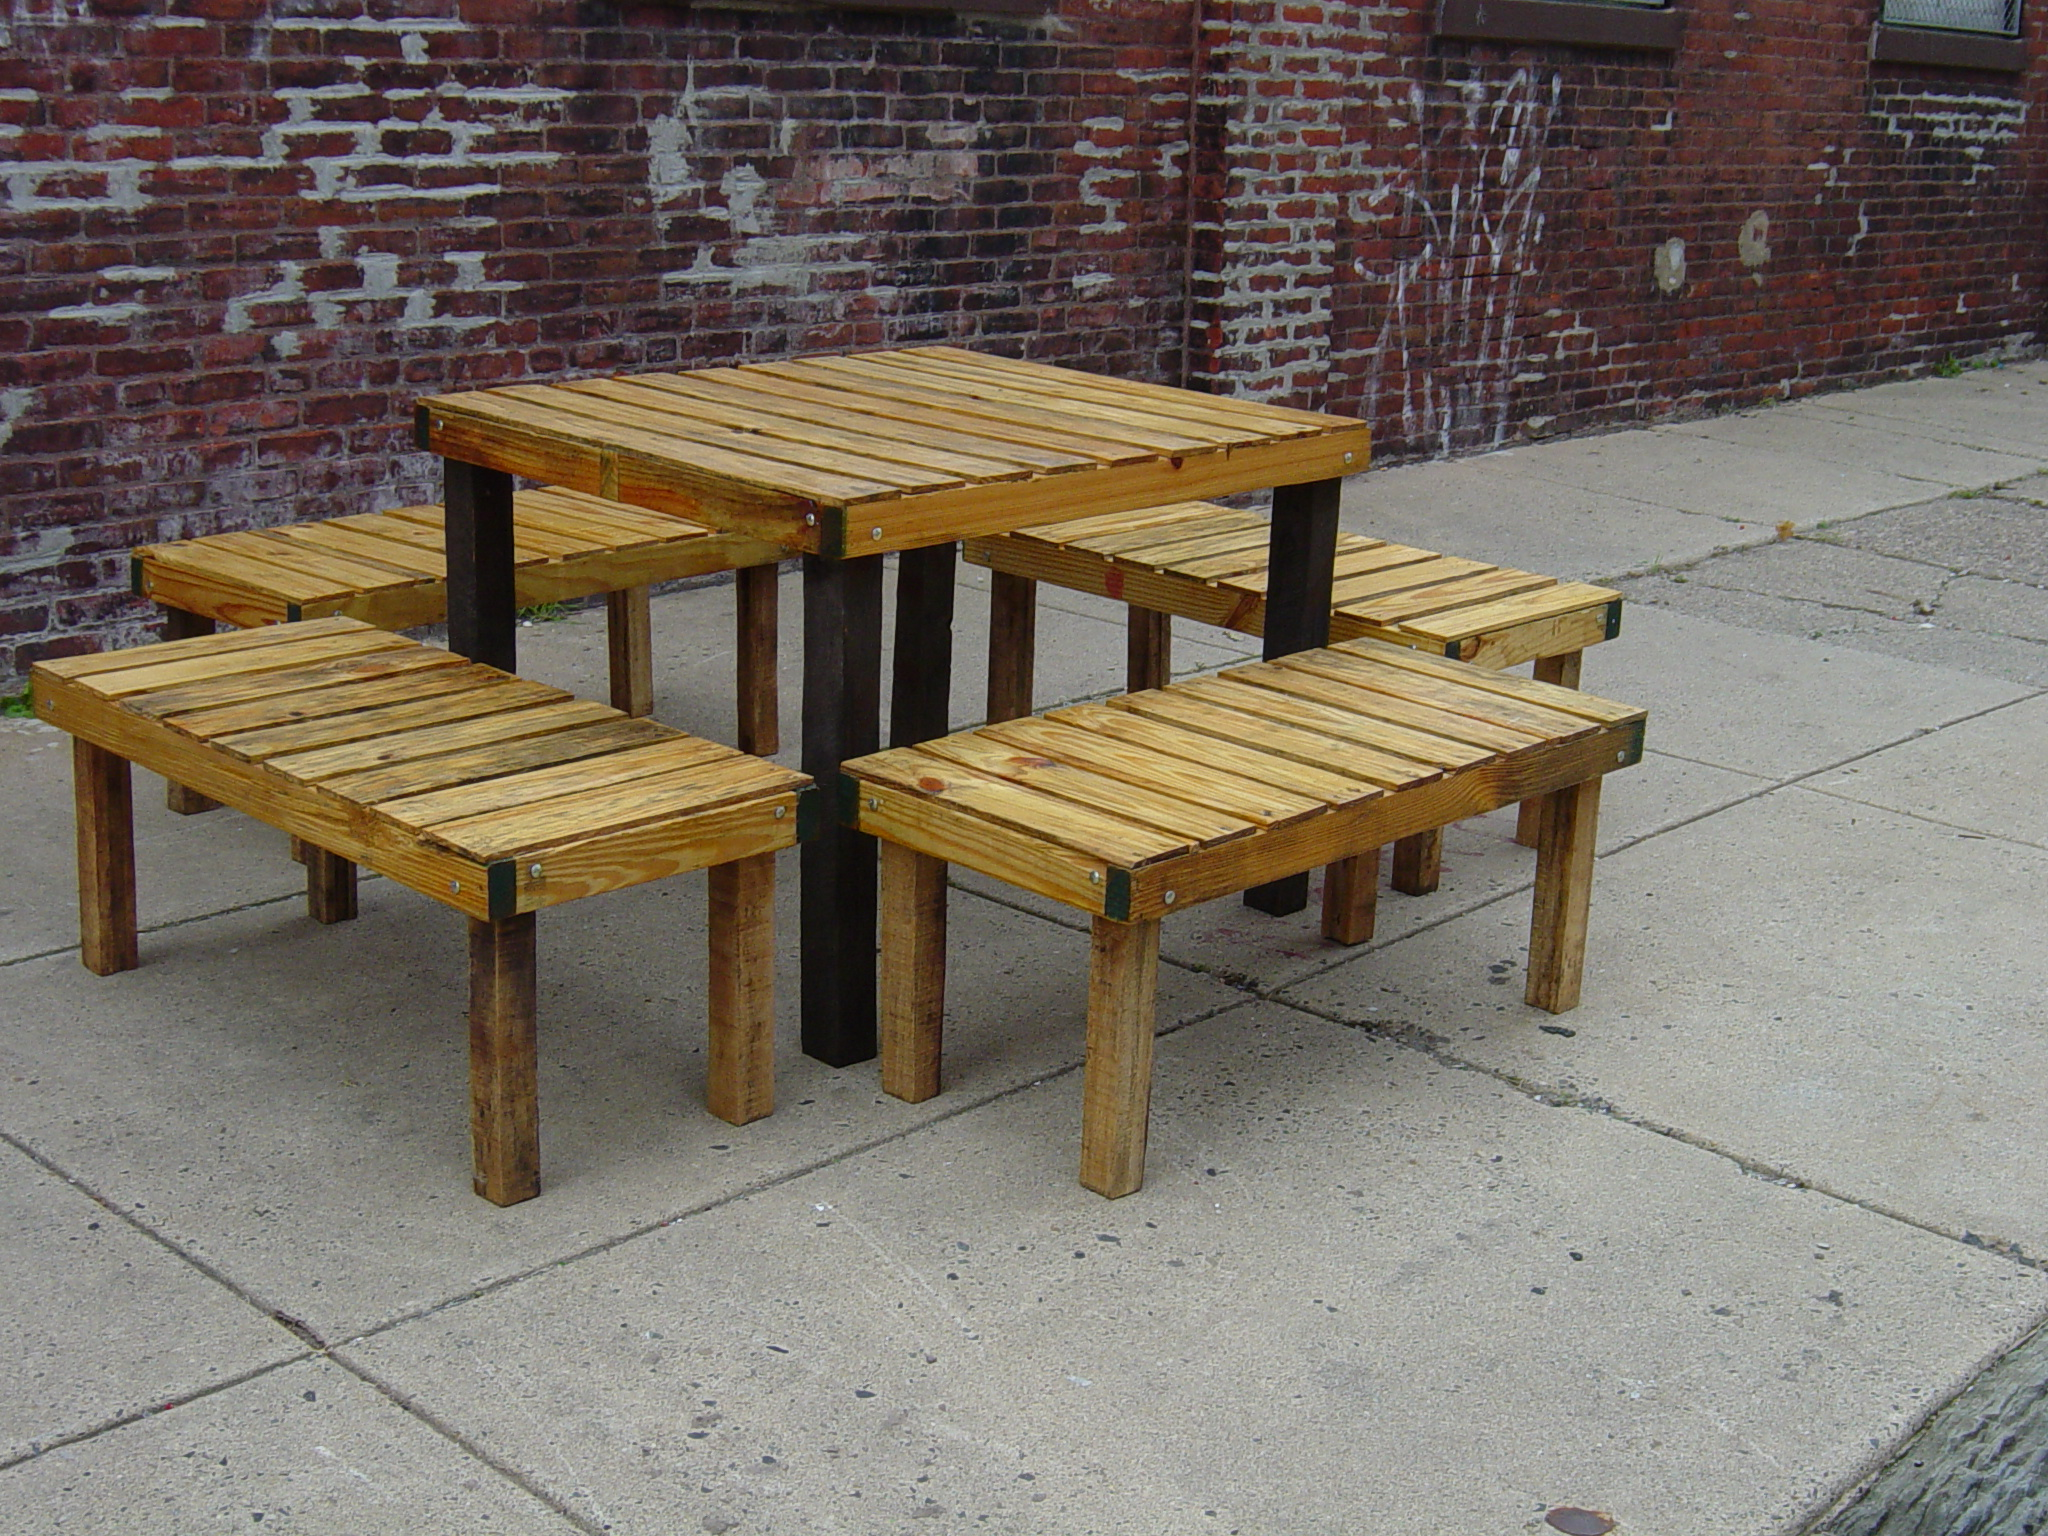 Rustic Wooden Picnic Tables Wood Benches Indoor Outdoor Sales ...